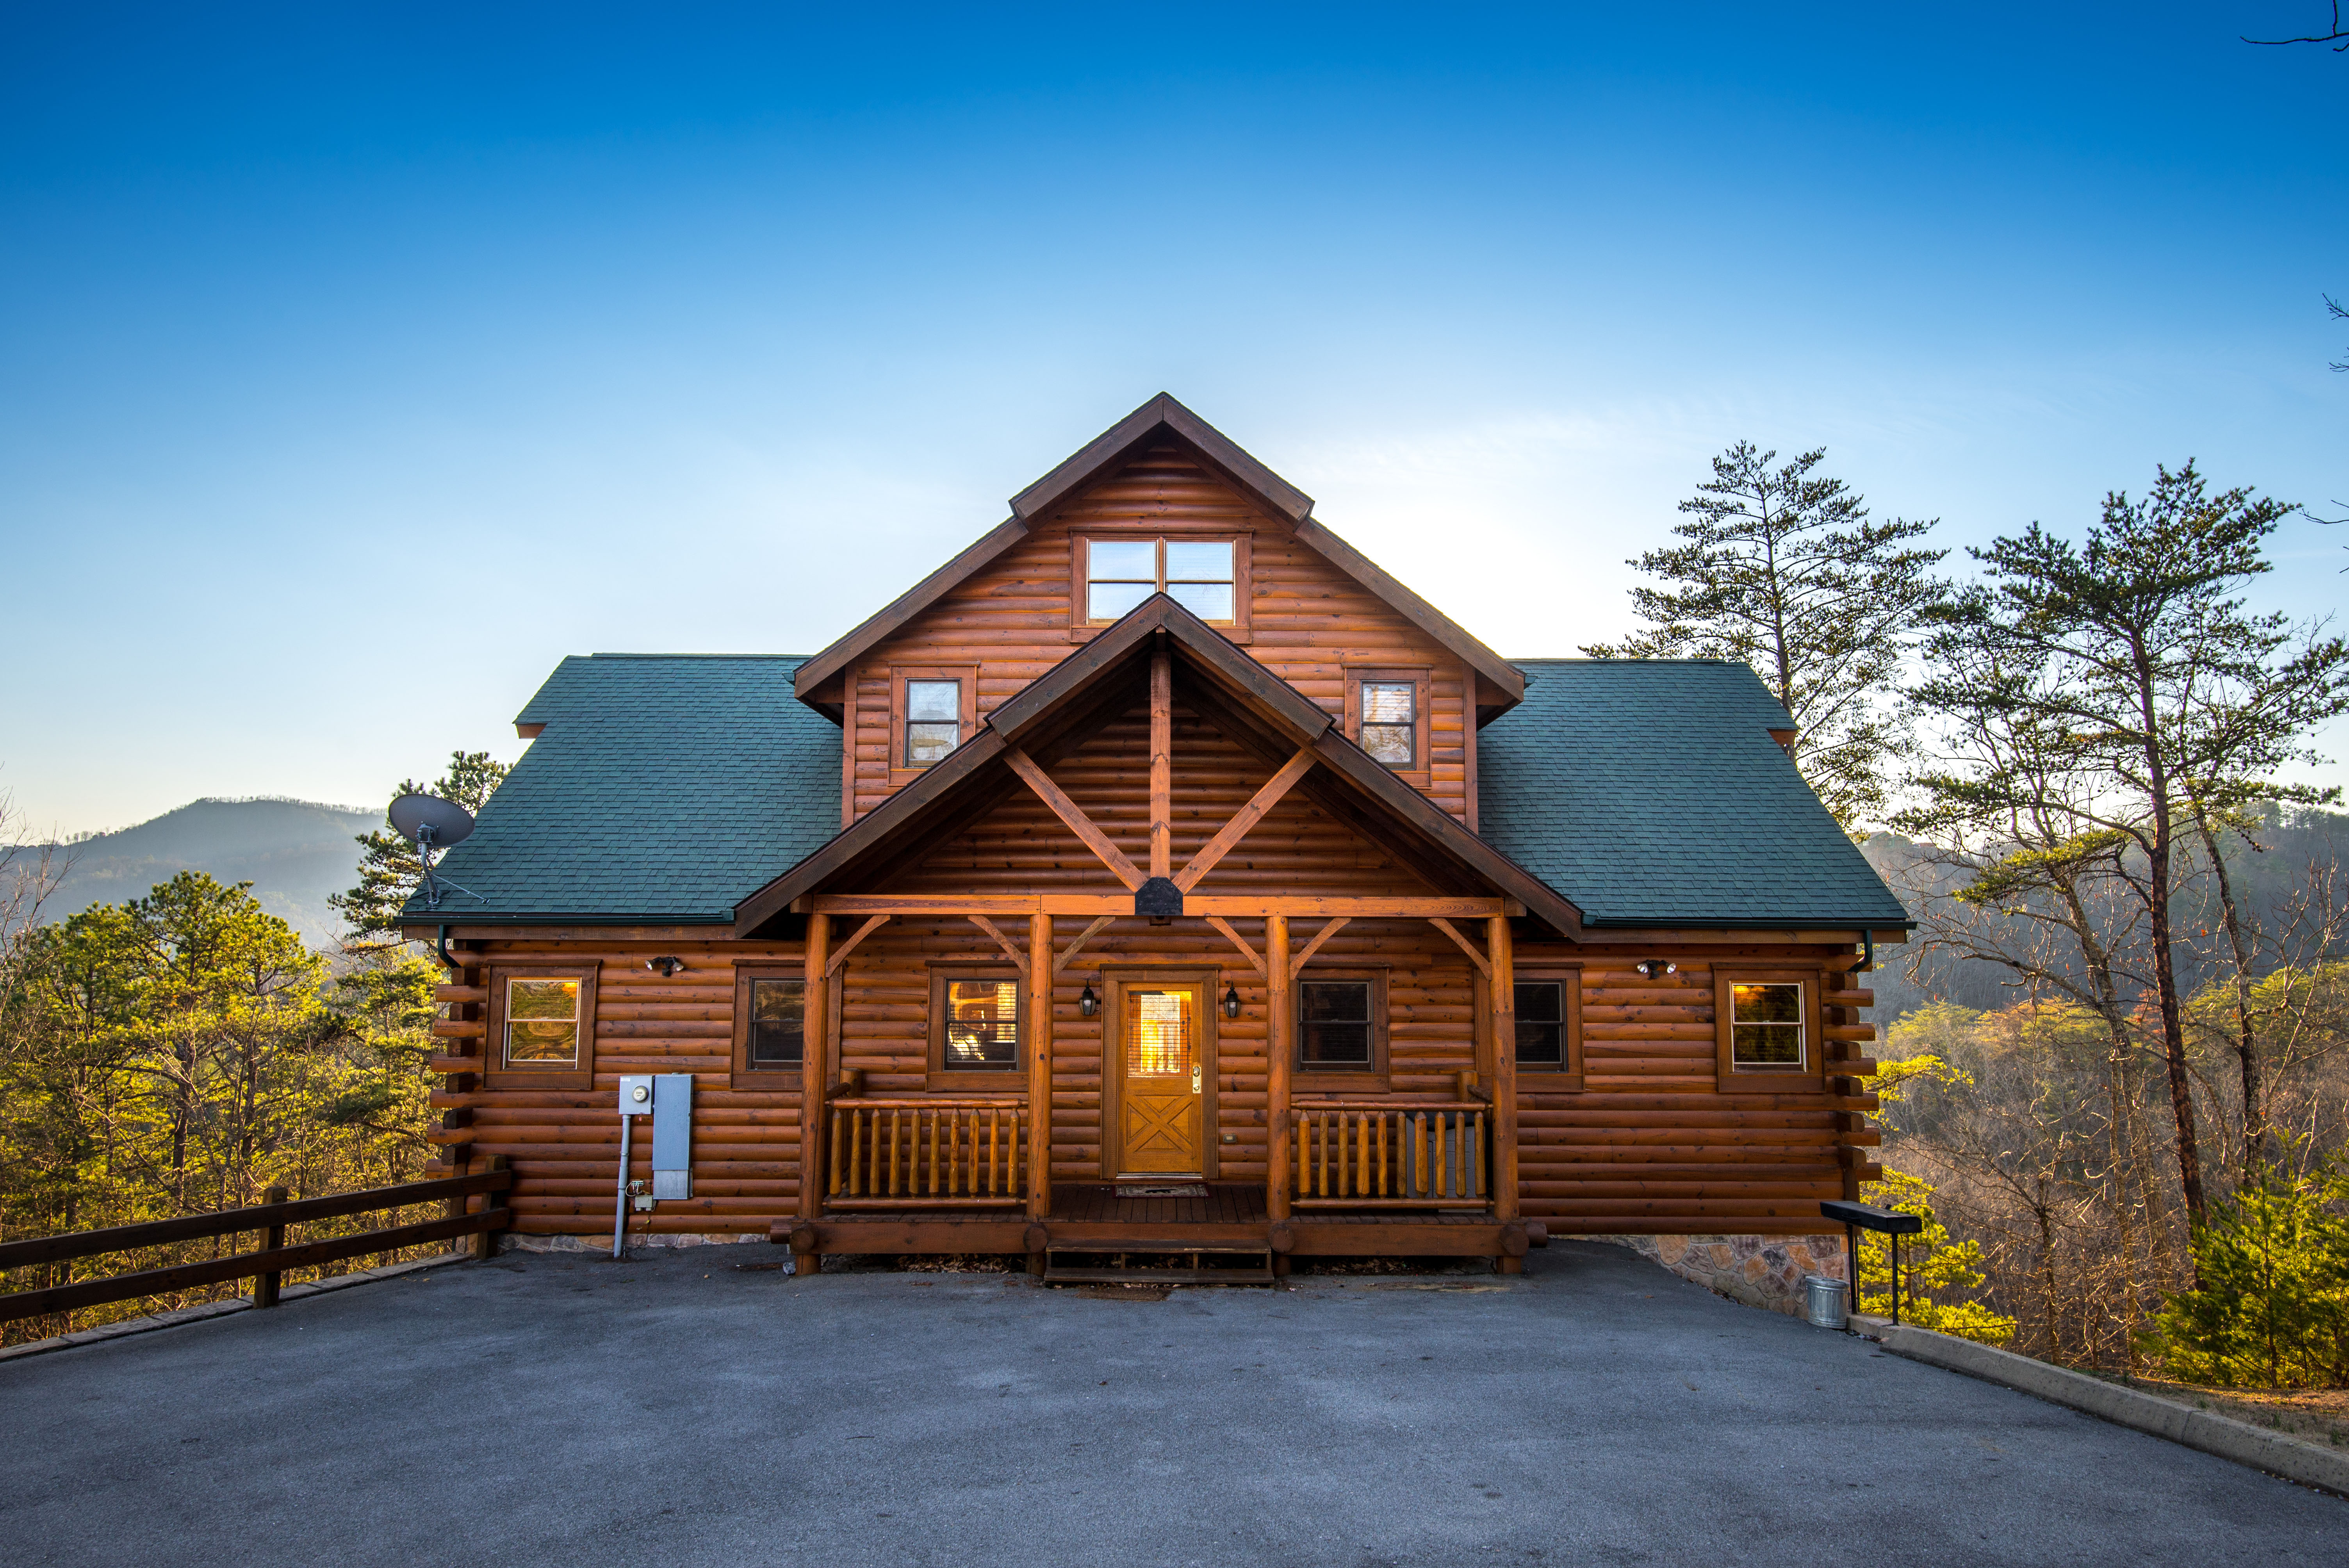 Pigeon Forge Four Bedroom Cabin Rental with Mountain Views-Gameroom- Theater Room